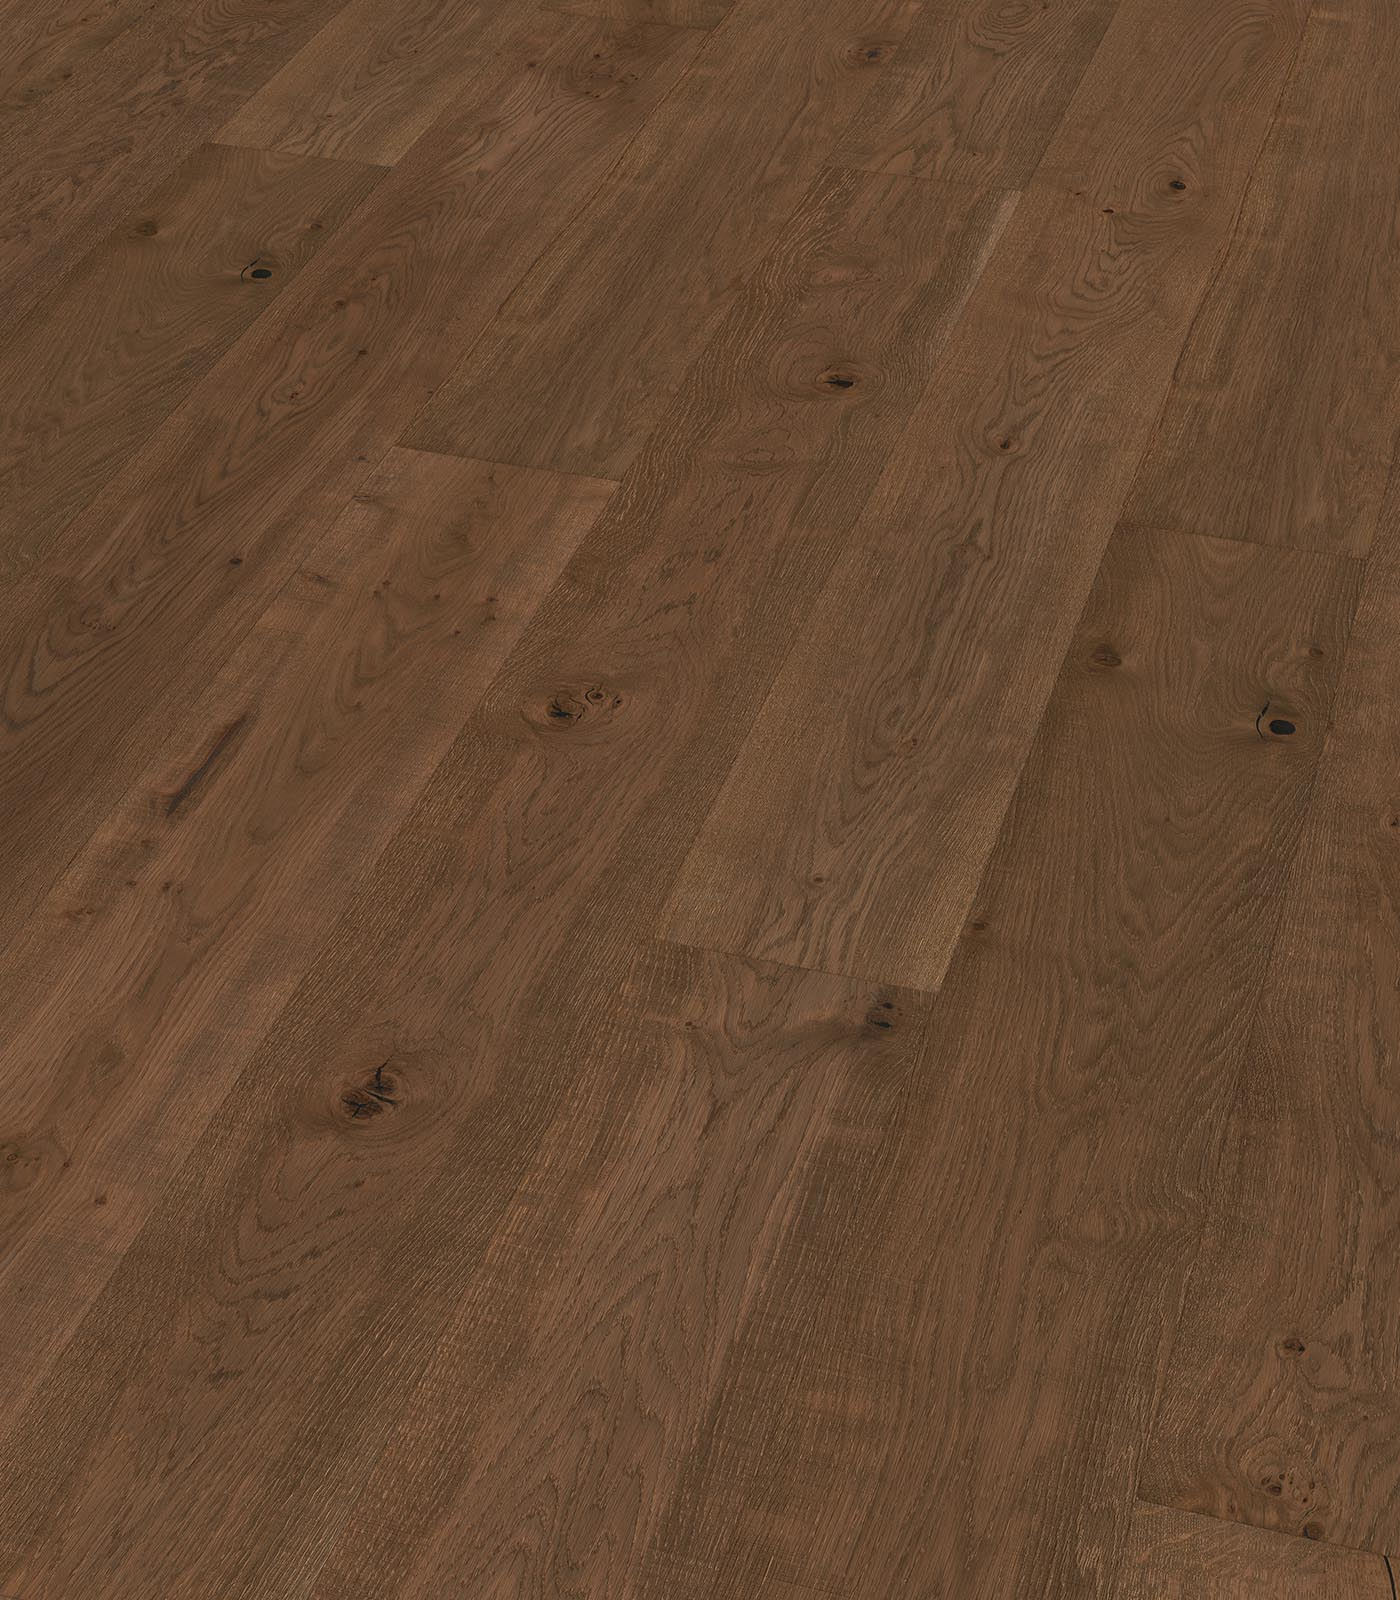 Kings Peak-Tasmanian Oak Floors-After Oak Collection